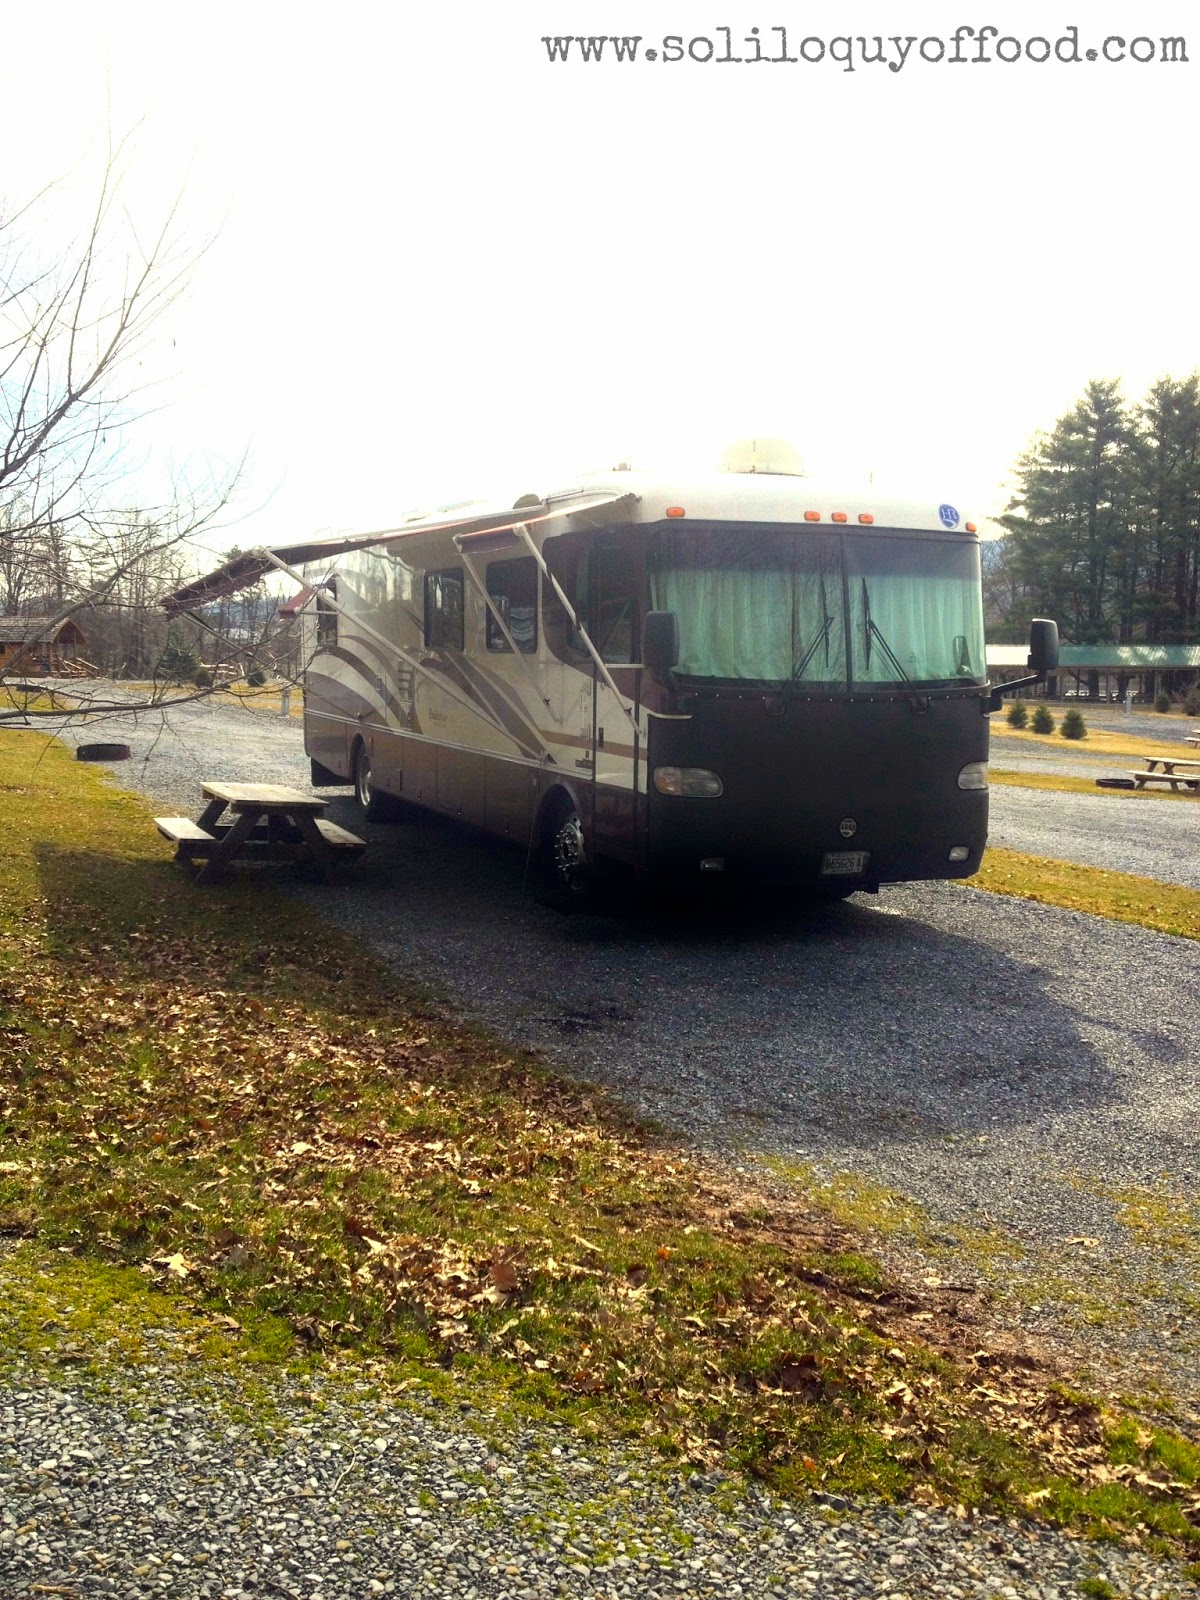 Chaos On Wheels: Twin Grove RV Resort & Chocolate World, PA - www.soliloquyoffod.com